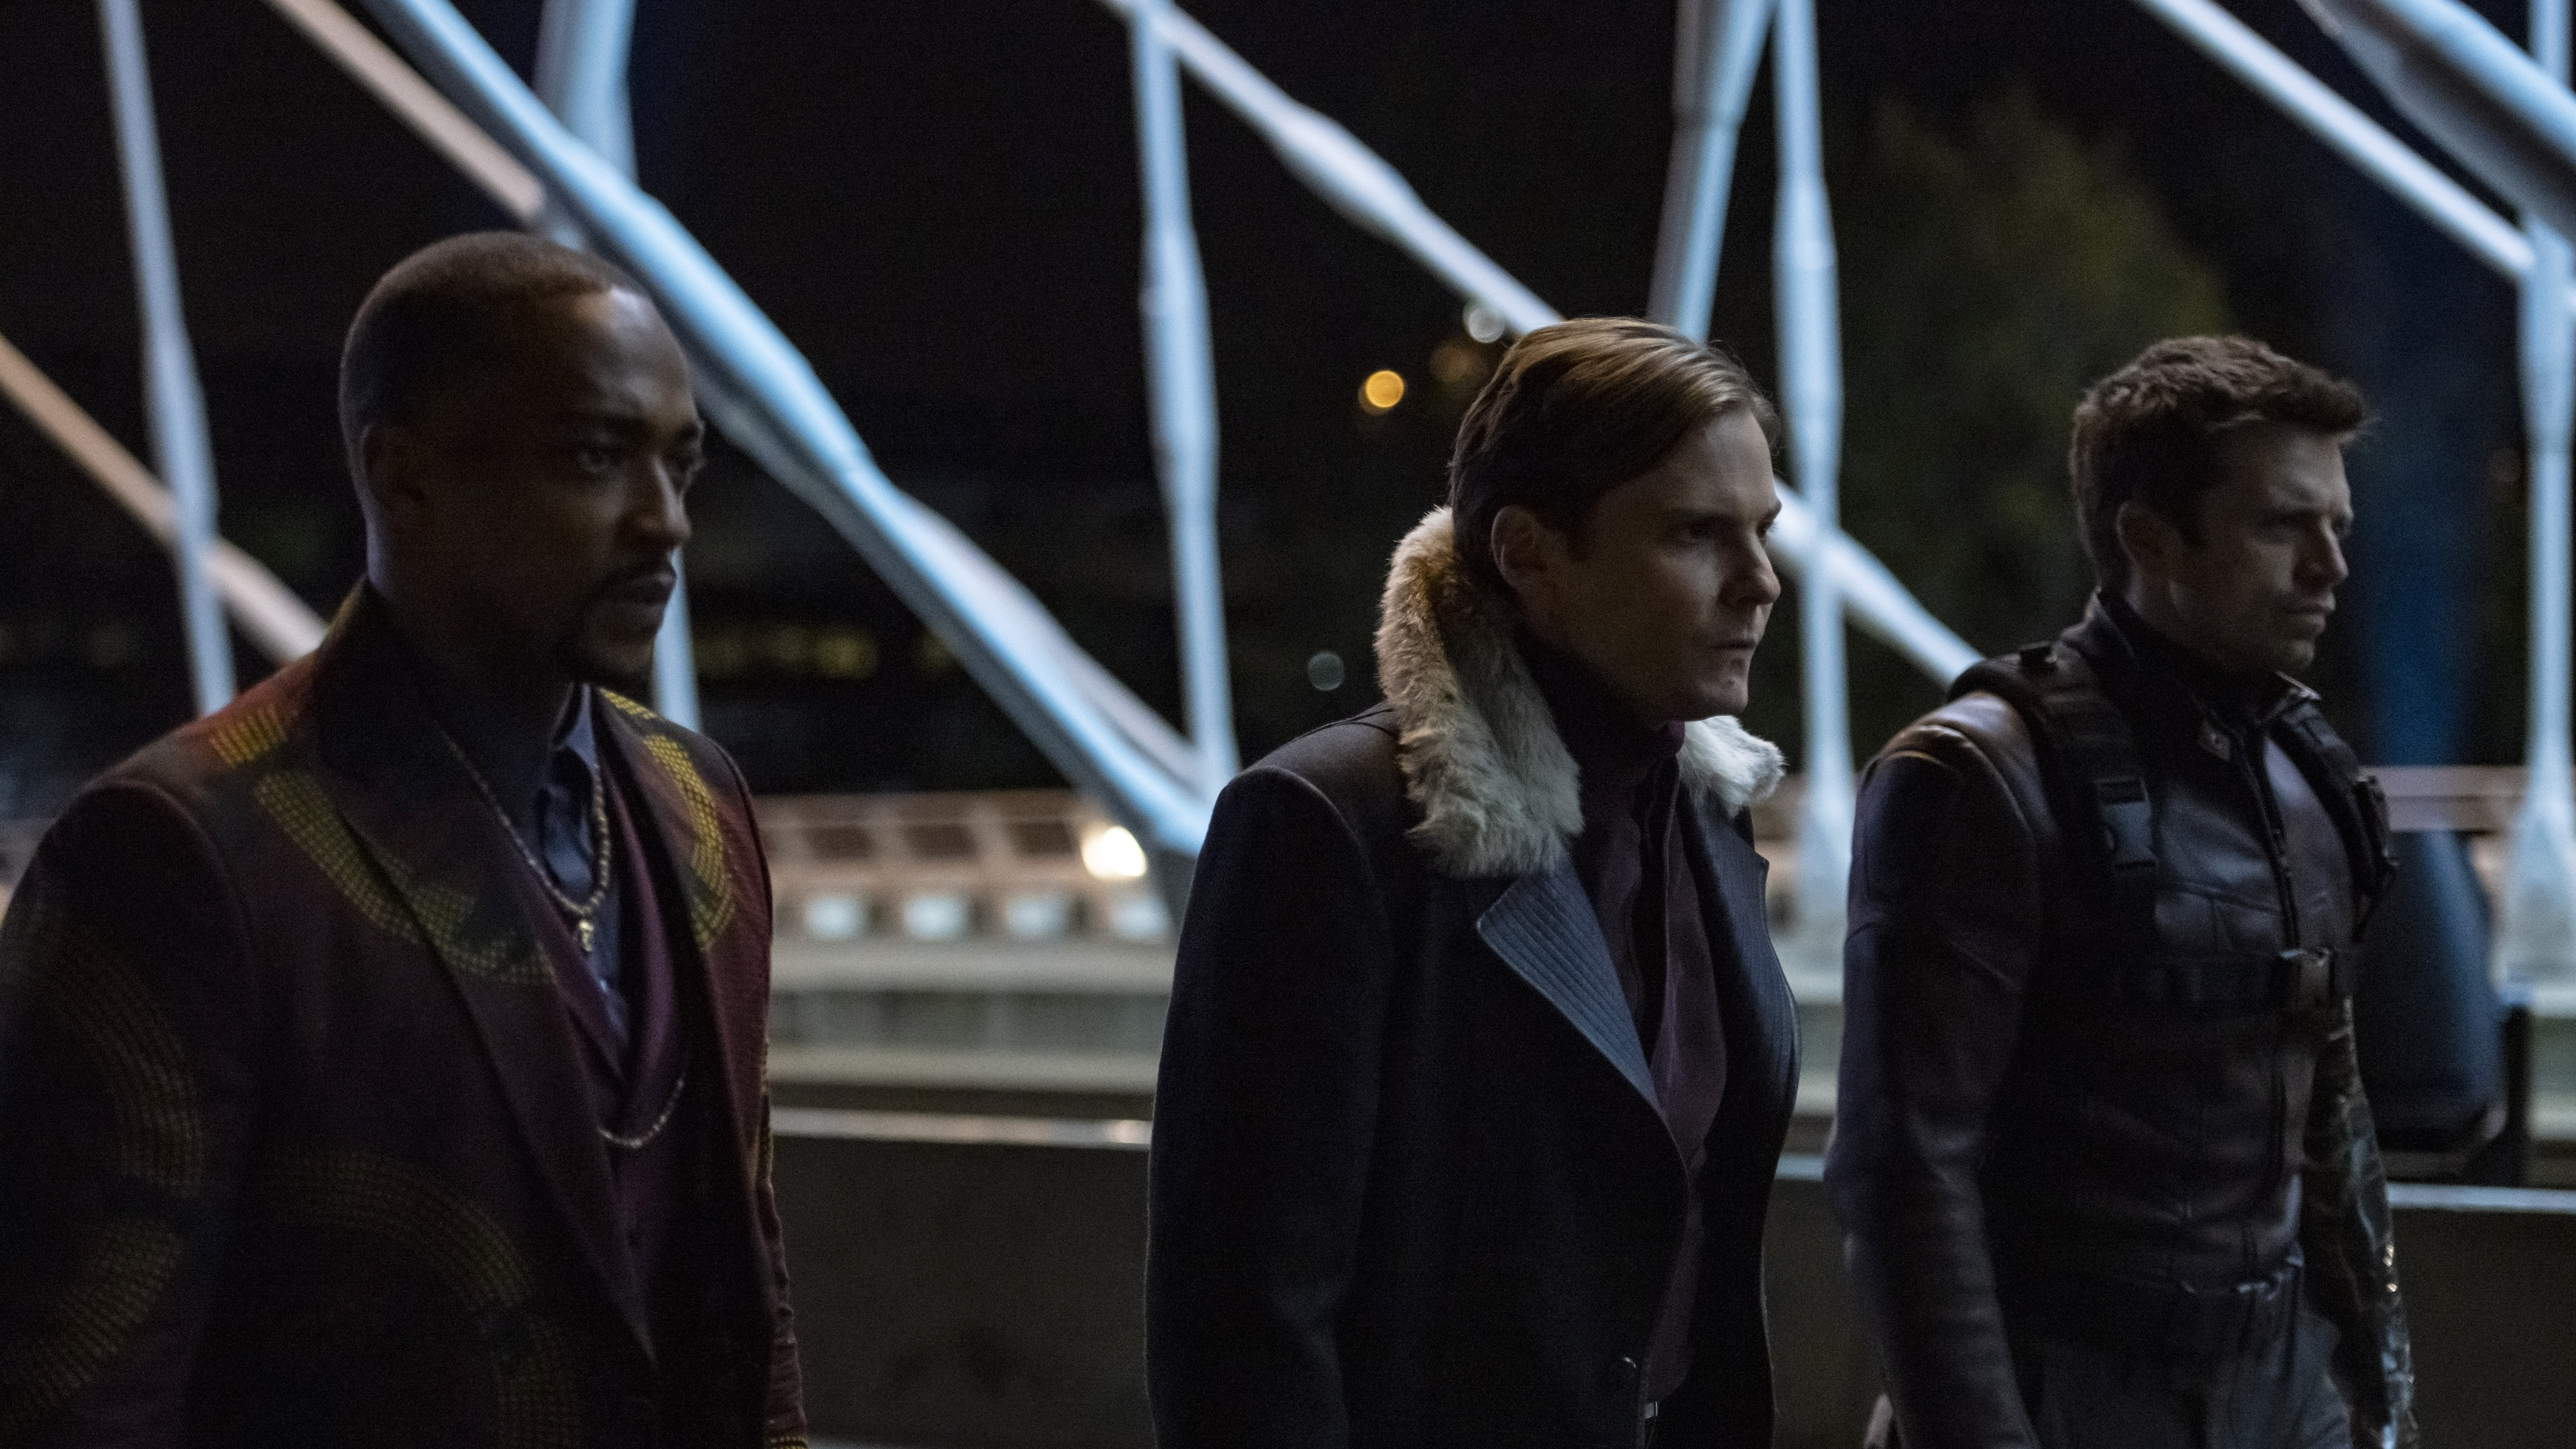 (L-R): Falcon/Sam Wilson (Anthony Mackie), Zemo (Daniel Brühl) and Winter Soldier/Bucky Barnes (Sebastian Stan) in Marvel Studios' THE FALCON AND THE WINTER SOLDIER exclusively on Disney+. Photo by Julie Vrabelová. ©Marvel Studios 2021. All Rights Reserved.